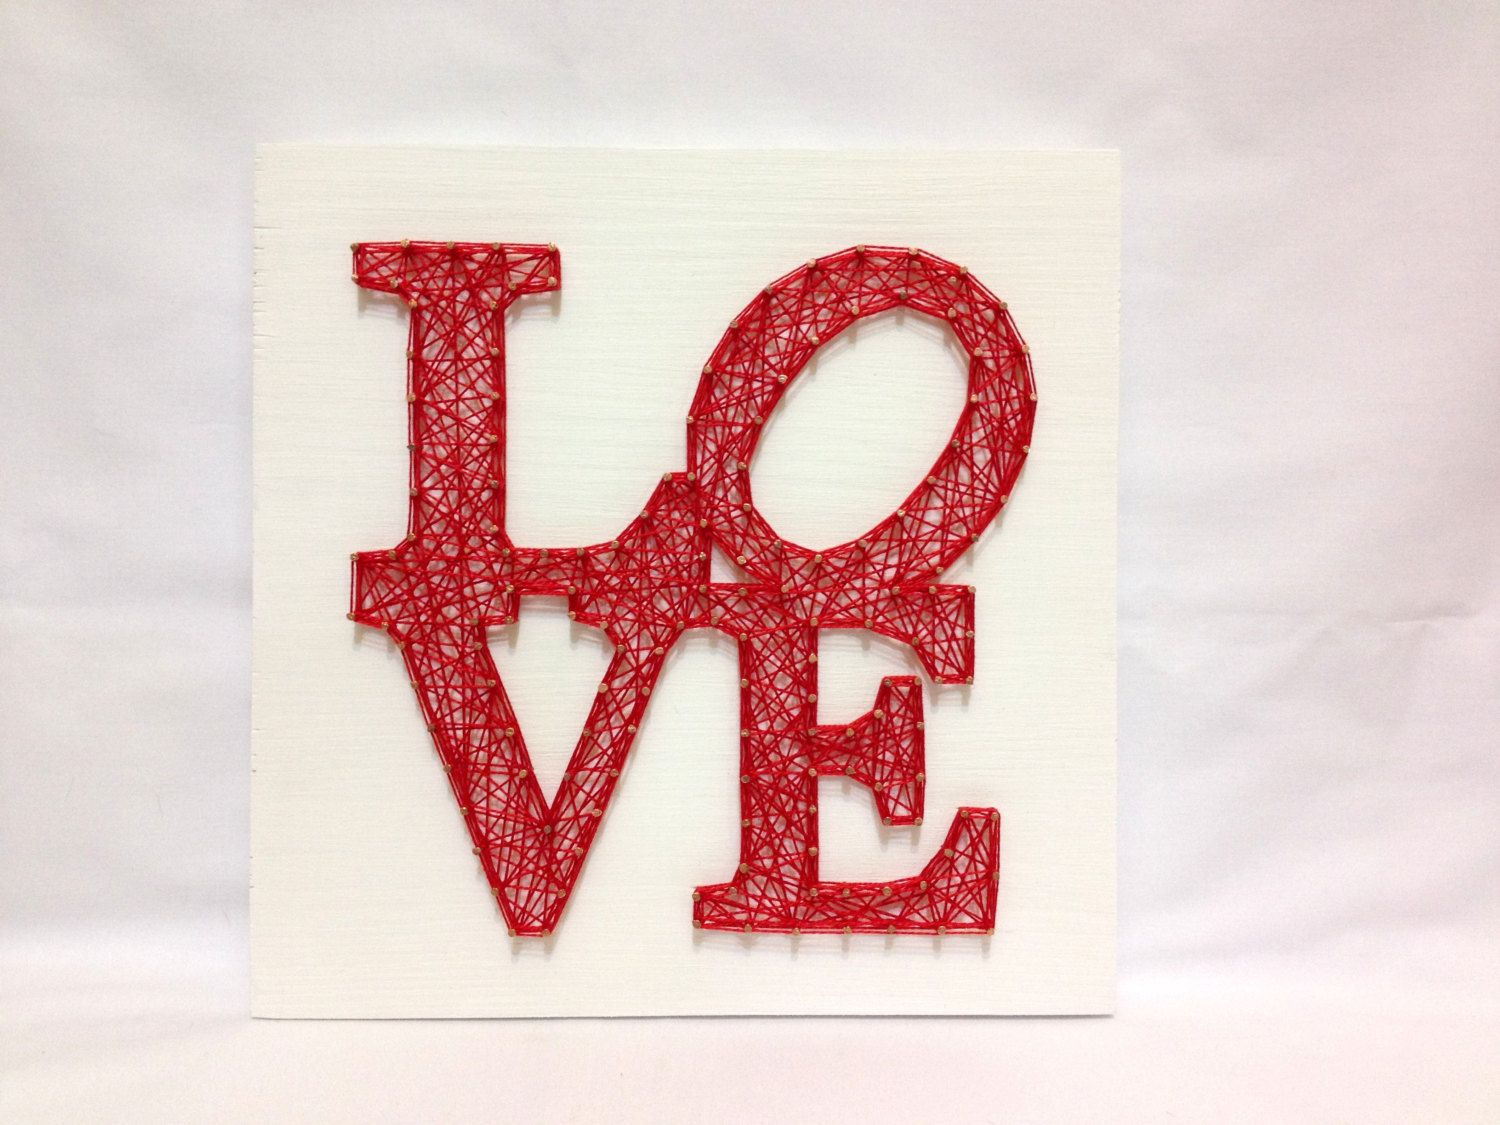 Merveilleux String Art Love Wall Art Love Sign Home Decor от OneRoots на Etsy